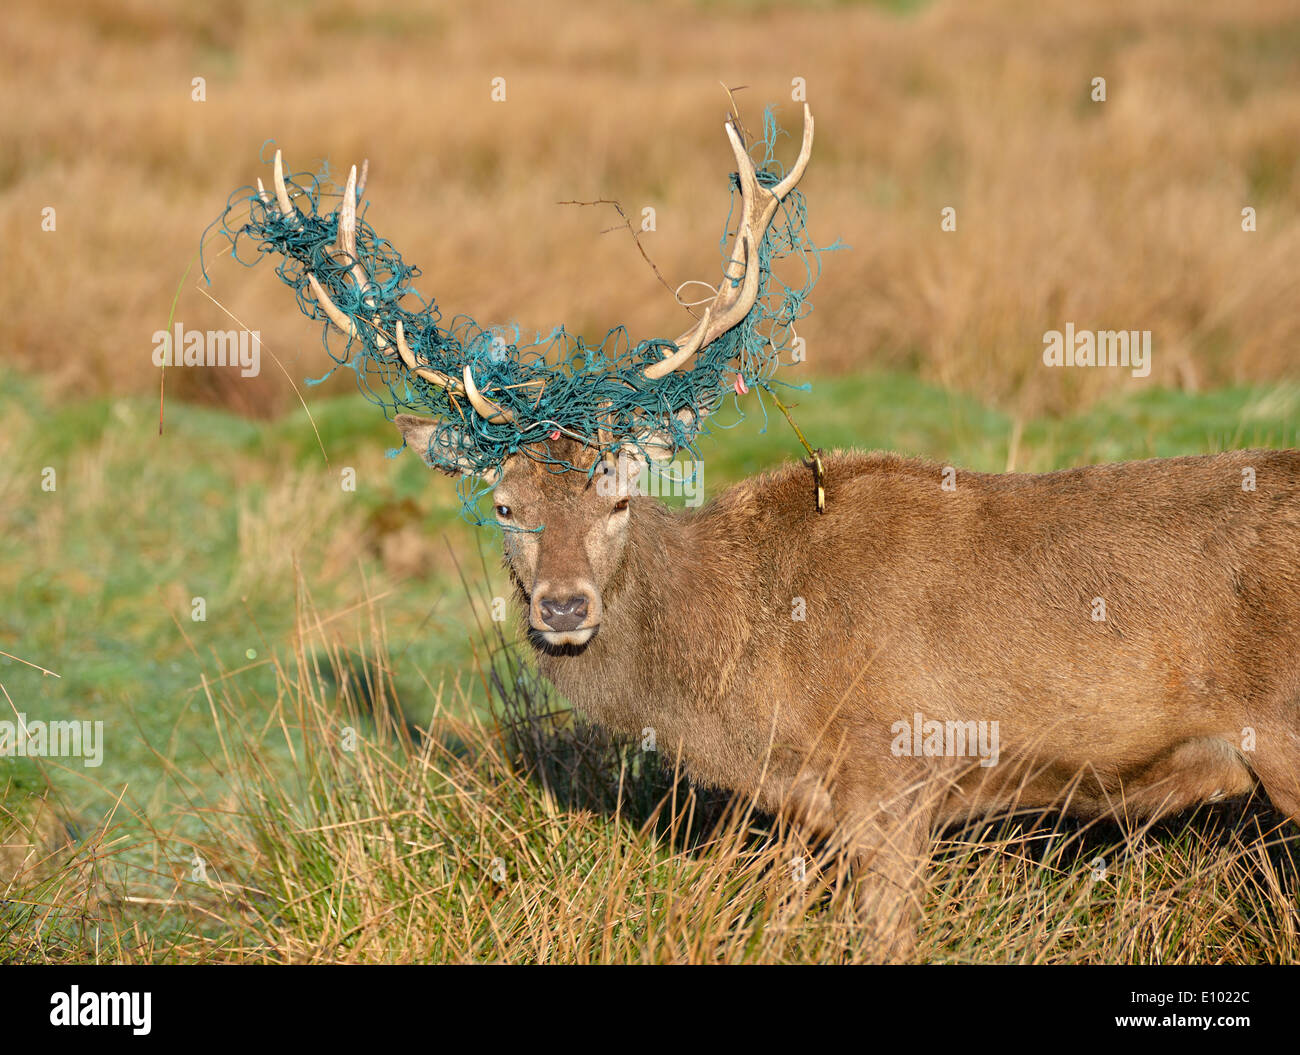 Red deer stag with fishing net in its horns, Bushy Park, London, UK - Stock Image